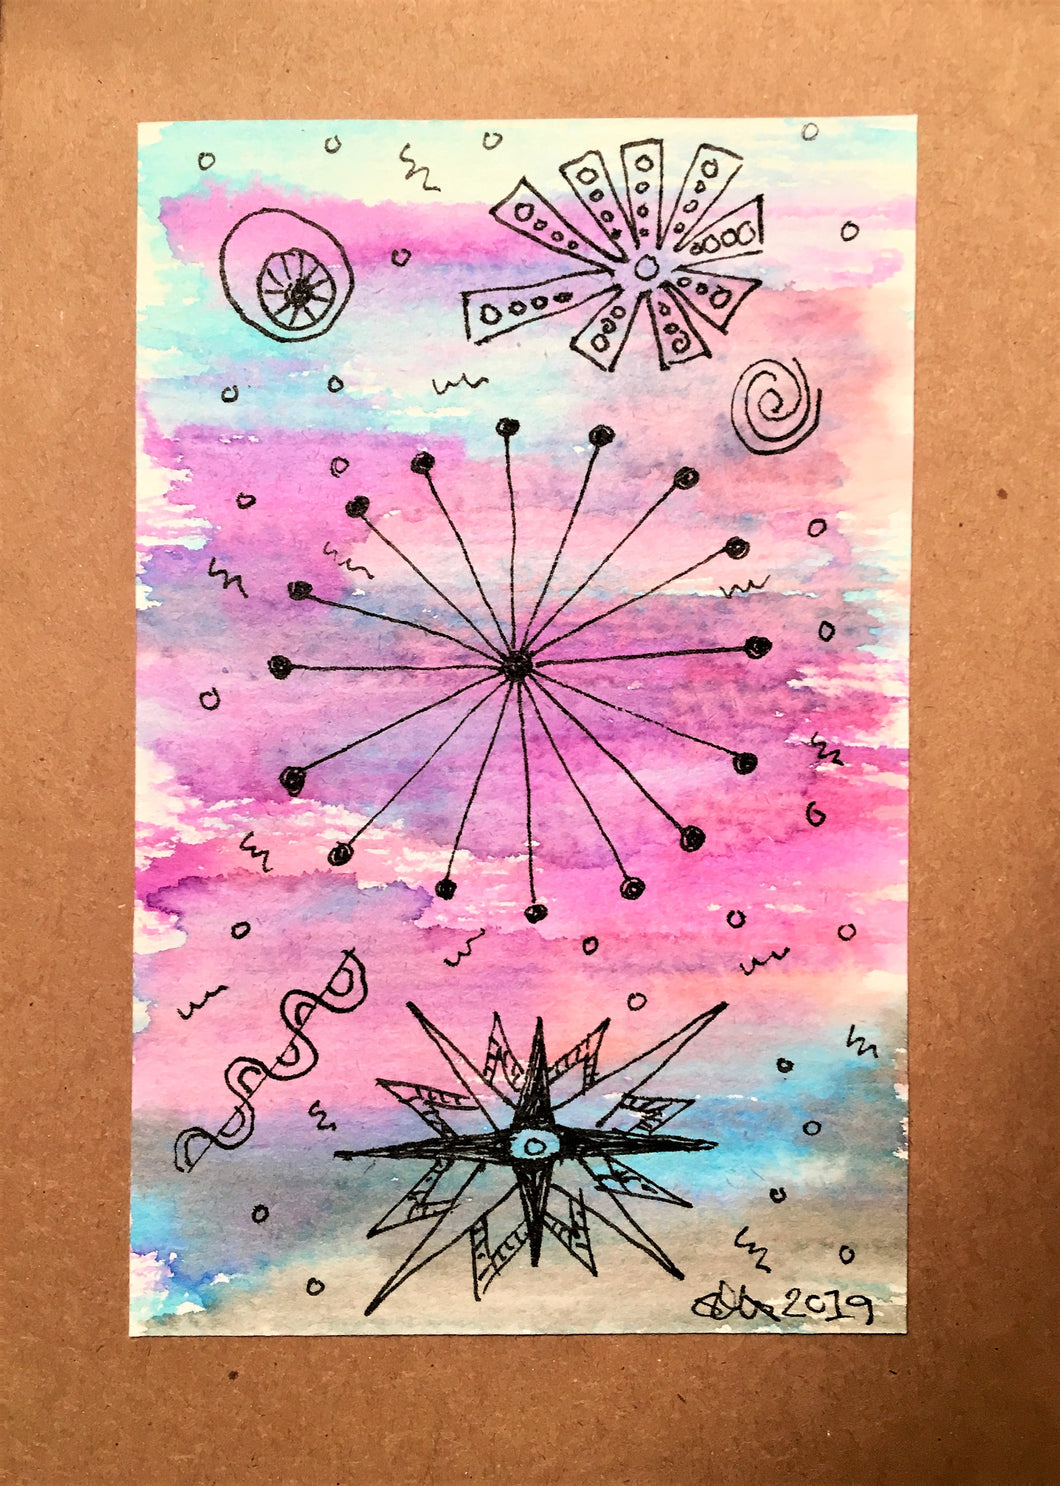 Handpainted Watercolour Greeting Card - Abstract Ink Star/Circle Design - Pink/Turquiose/Blue/Purple - eDgE dEsiGn London